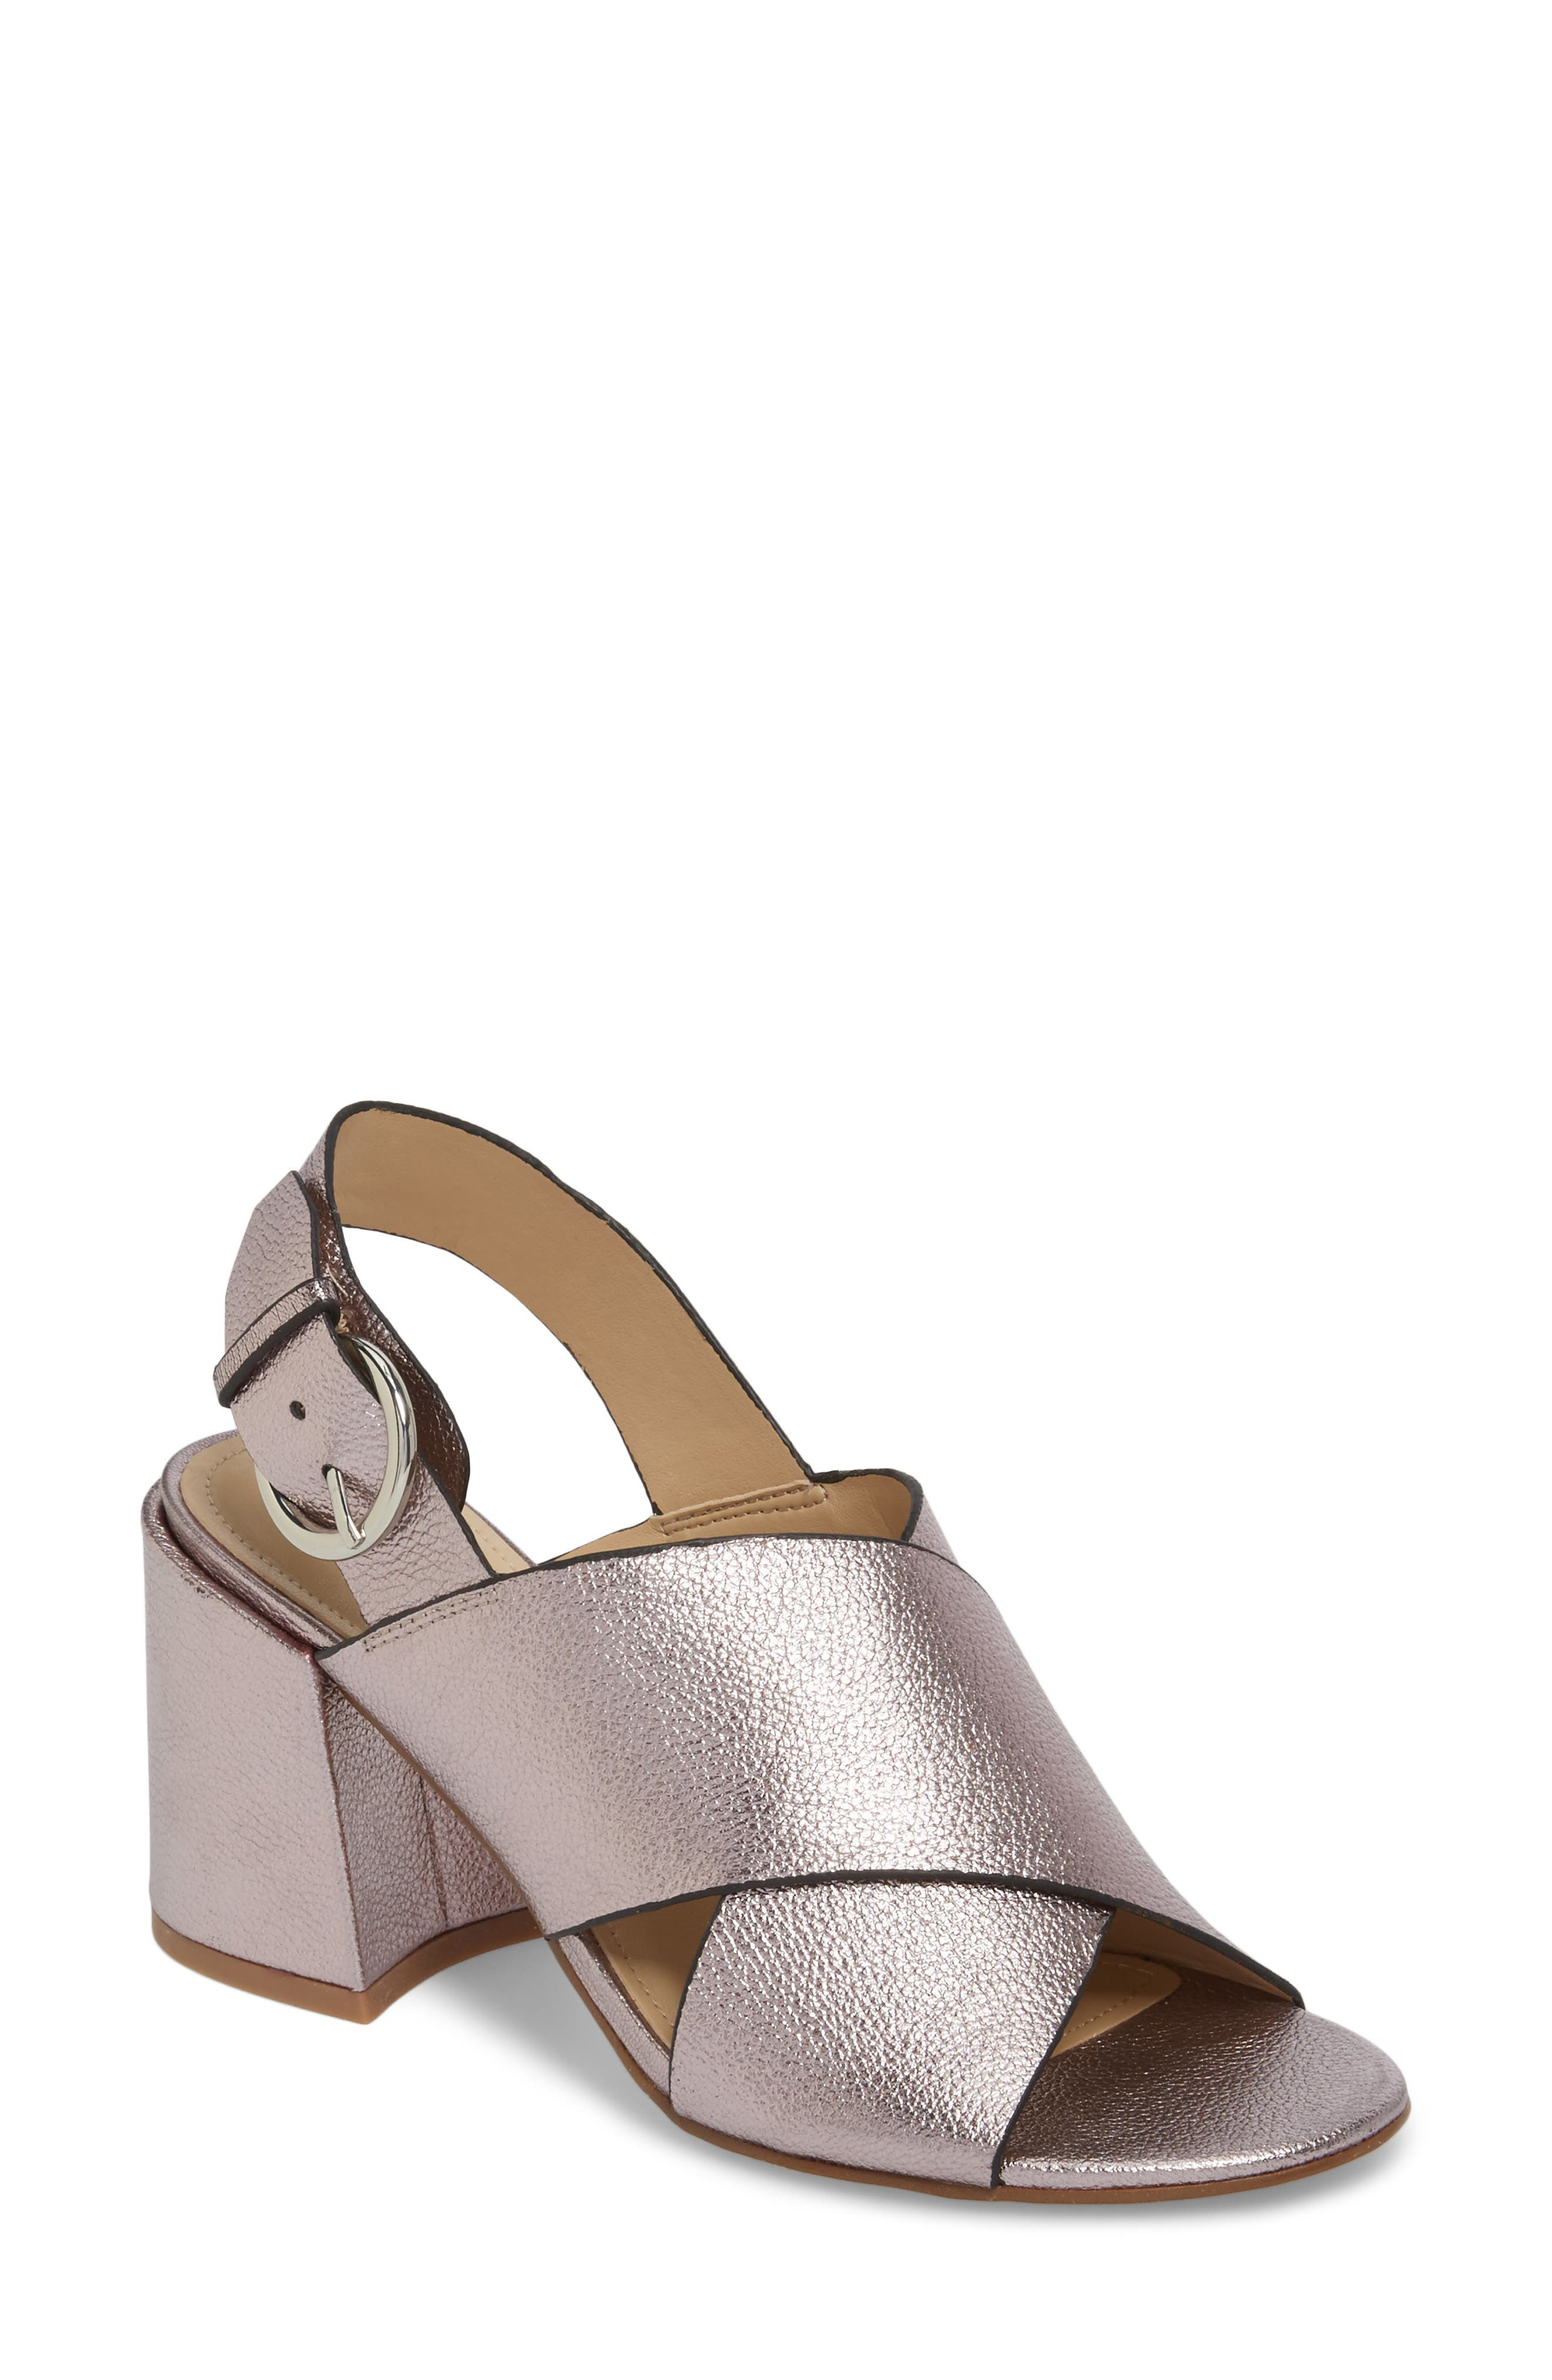 Hocie Slingback Sandal,                         Main,                         color, Gold Leather